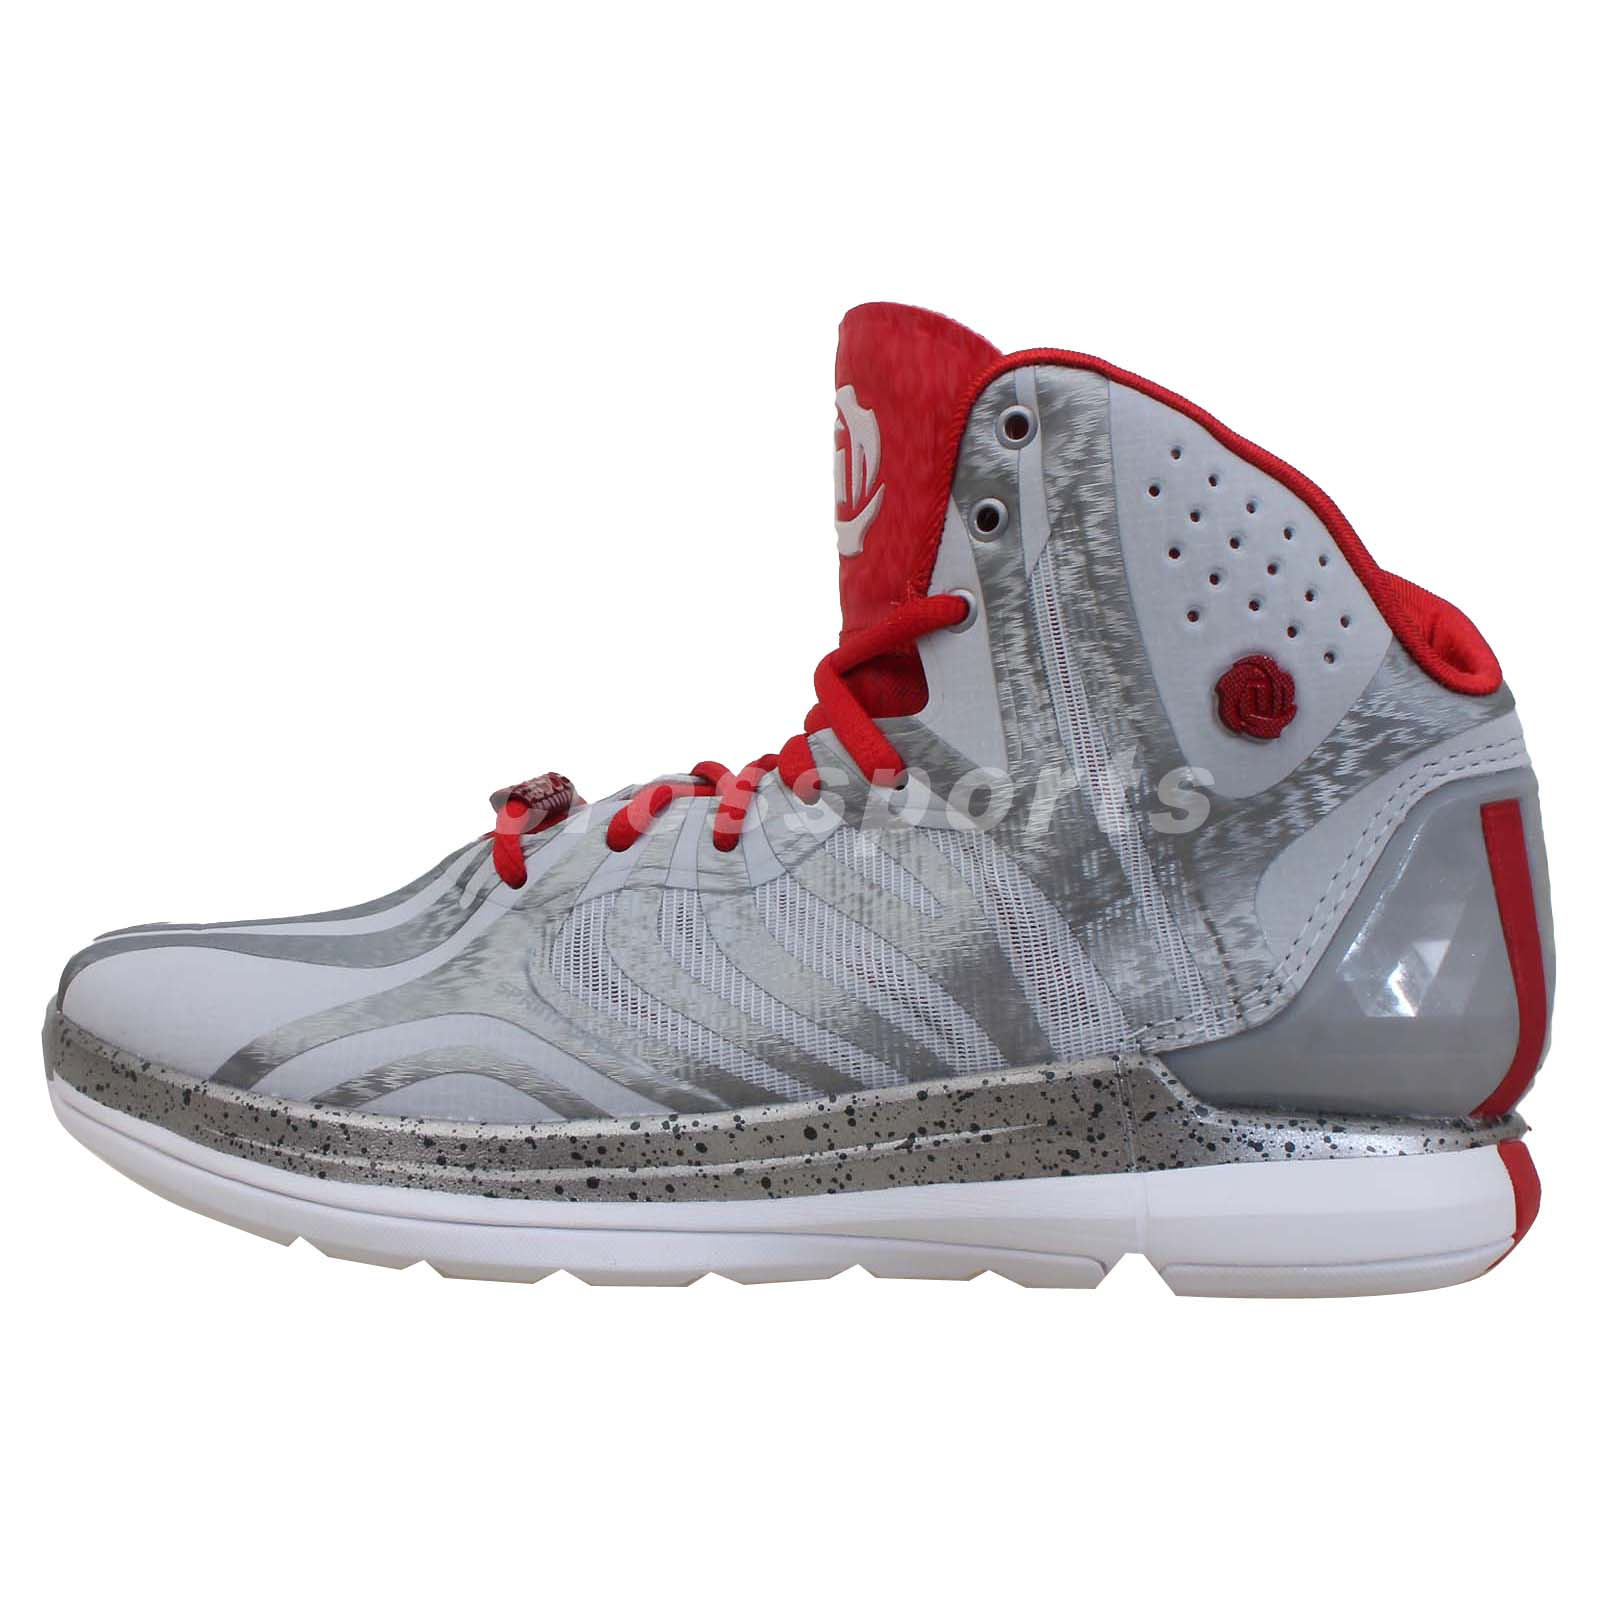 Adidas D Rose 4.5 J Derrick Tiger Chicago 2014 Youth Boys ...